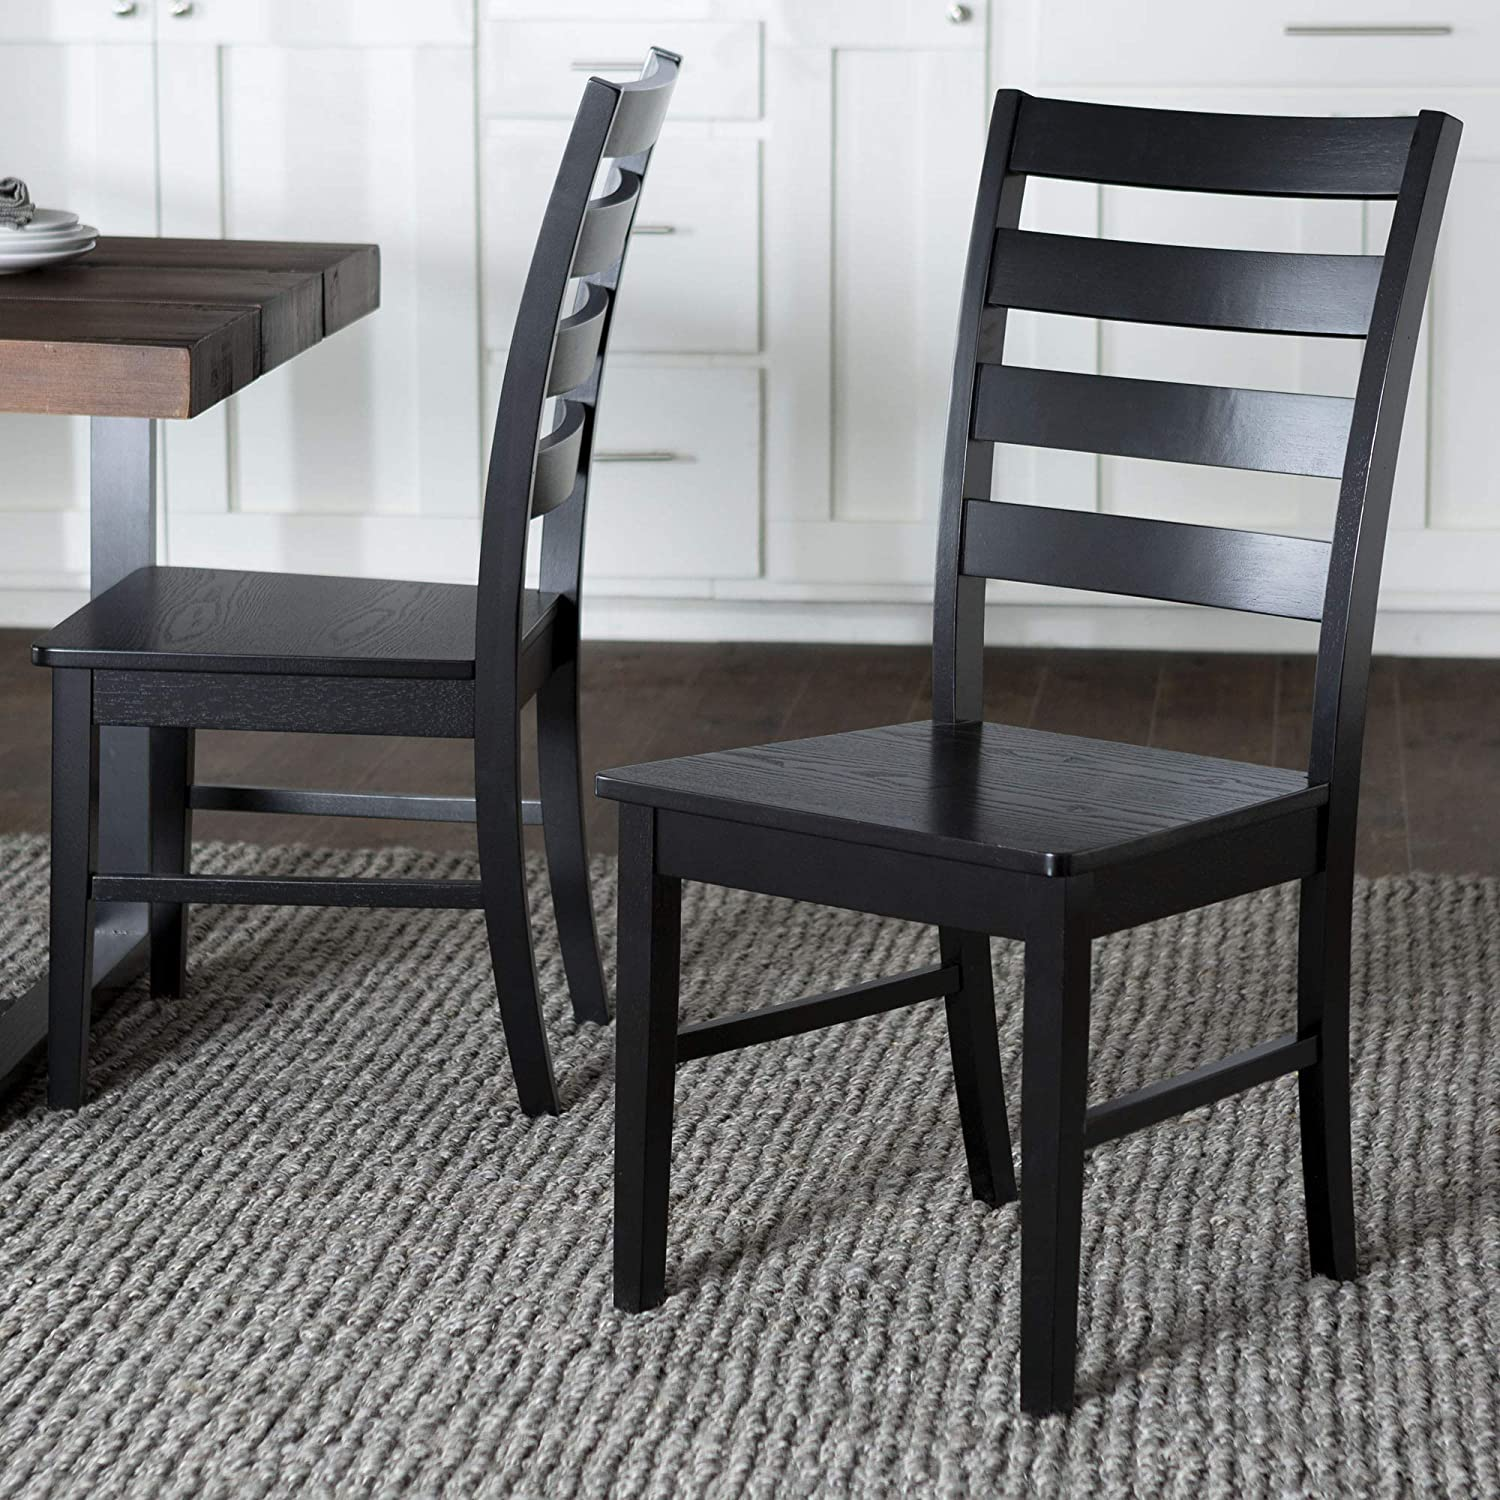 WE Furniture Modern Farmhouse Wood Kitchen Dining Chair, Set Of 2, Black